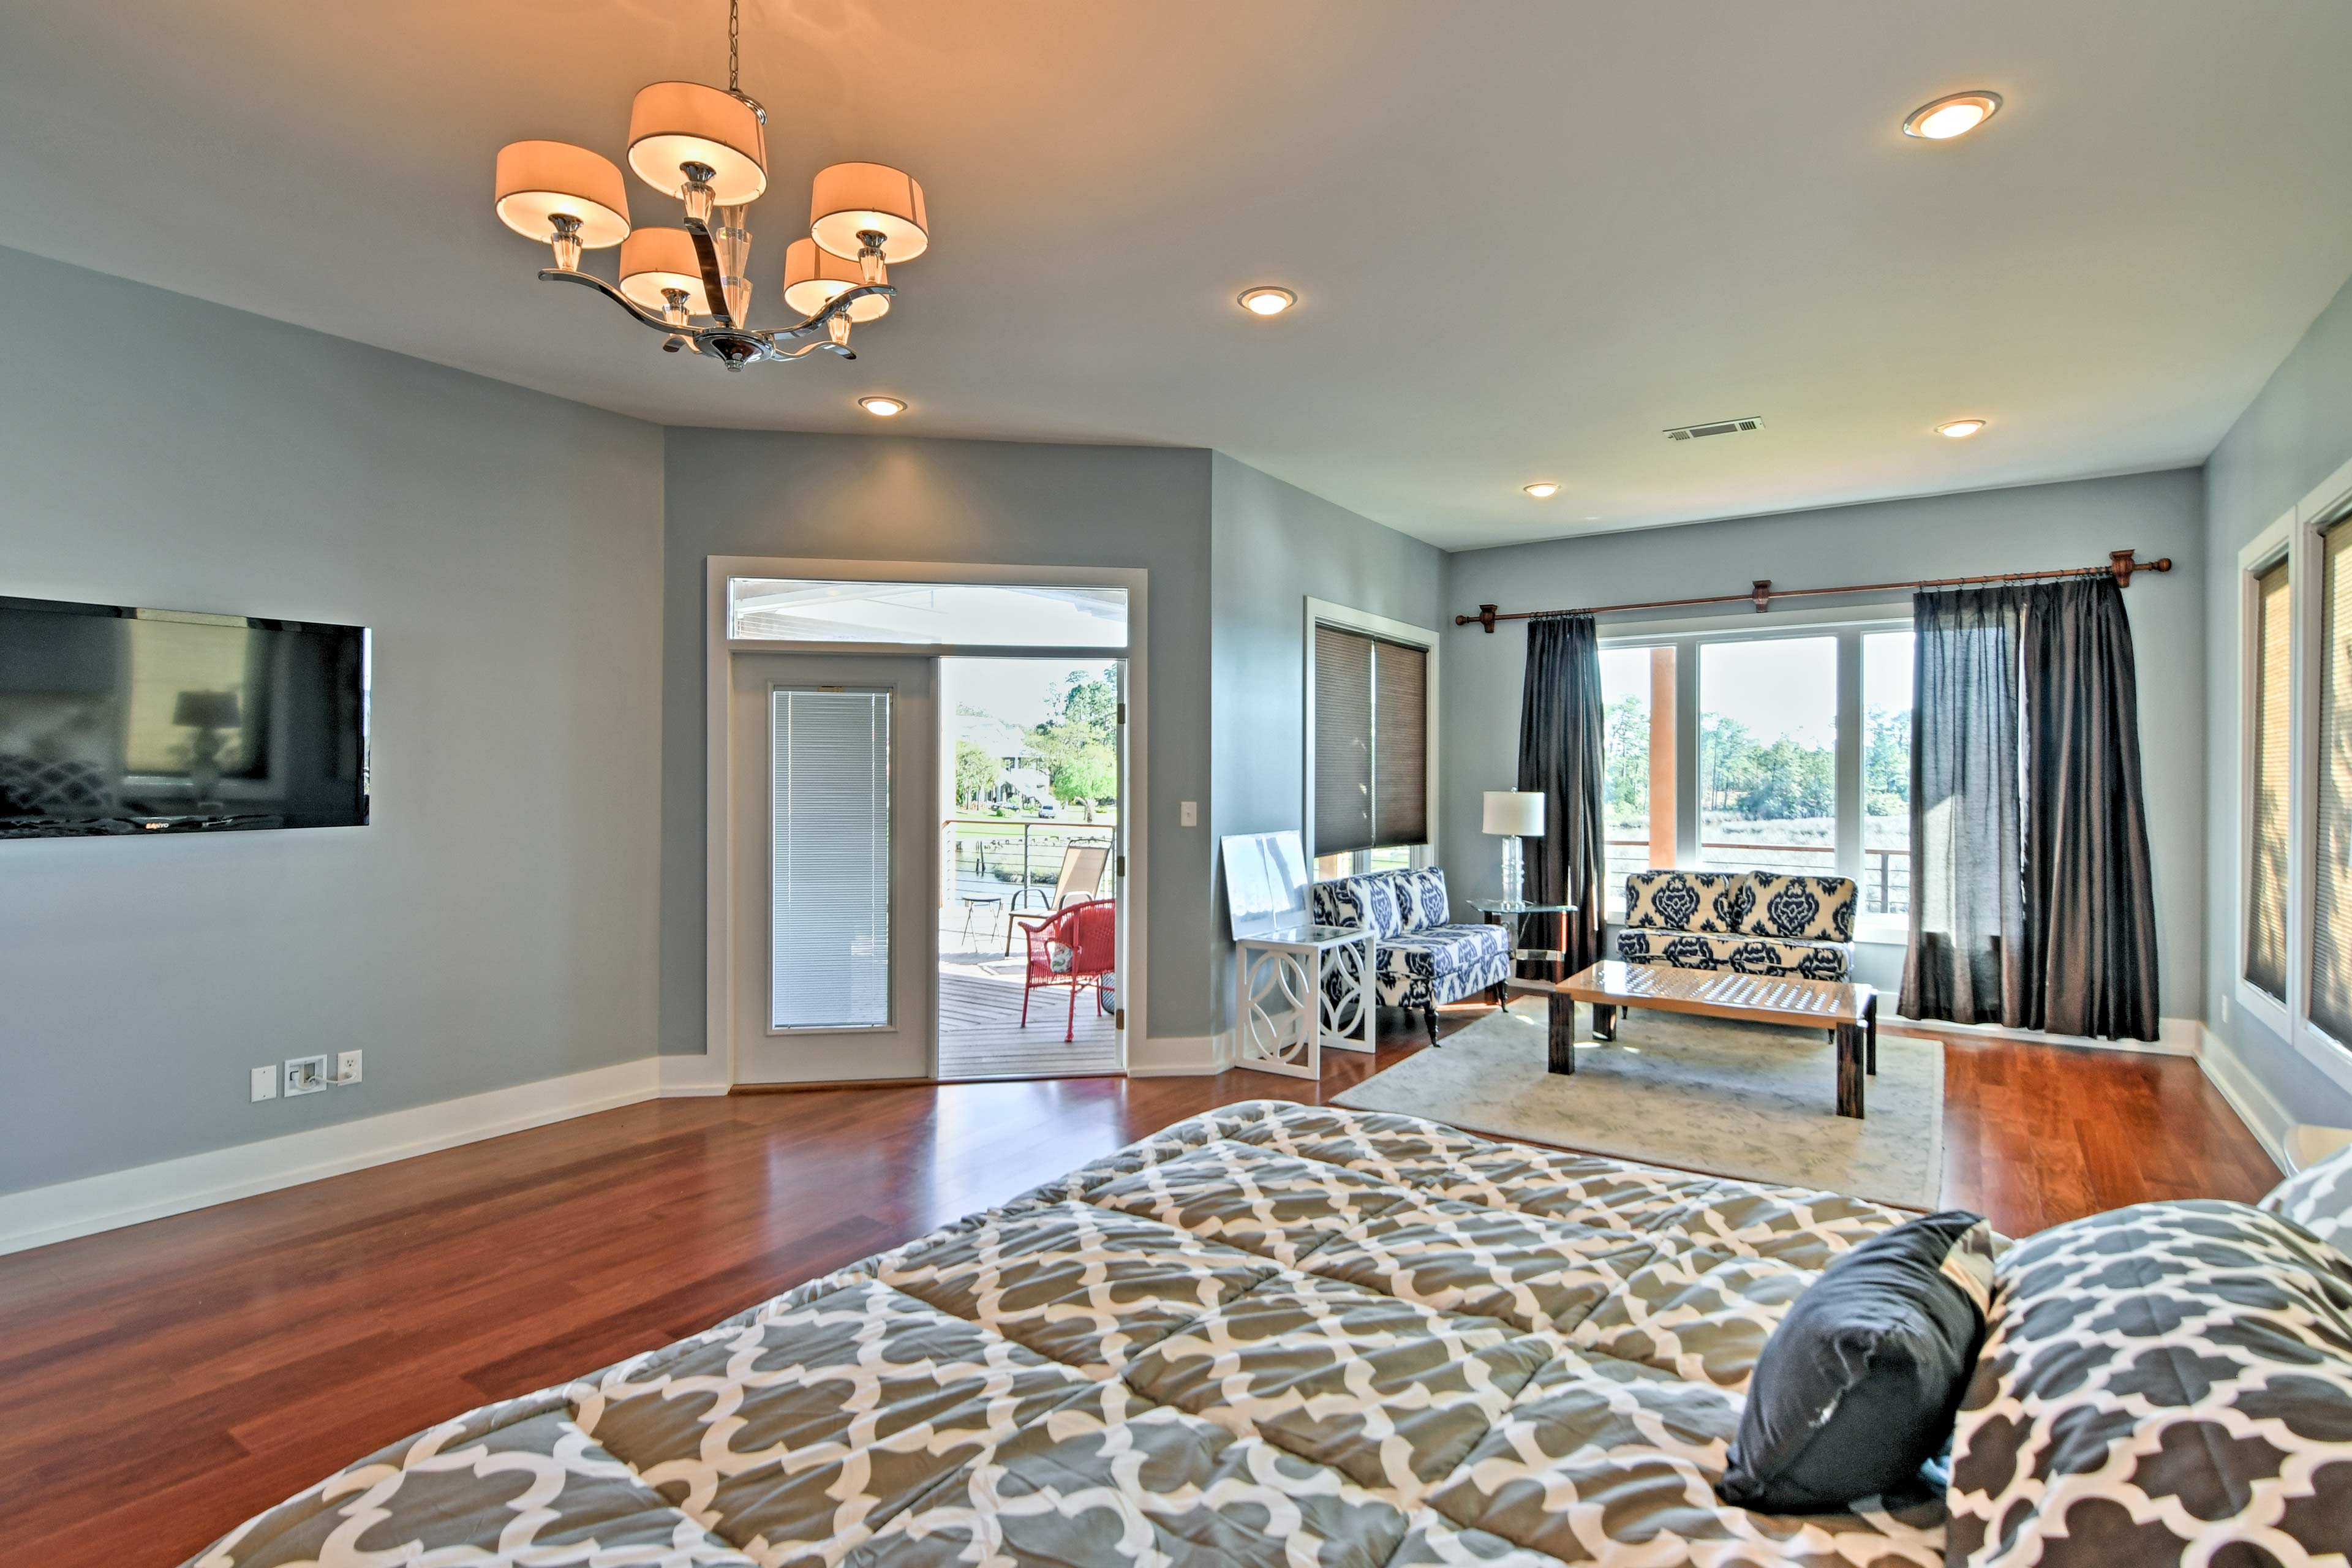 Two guests can enjoy the life of luxury in the master bedroom.